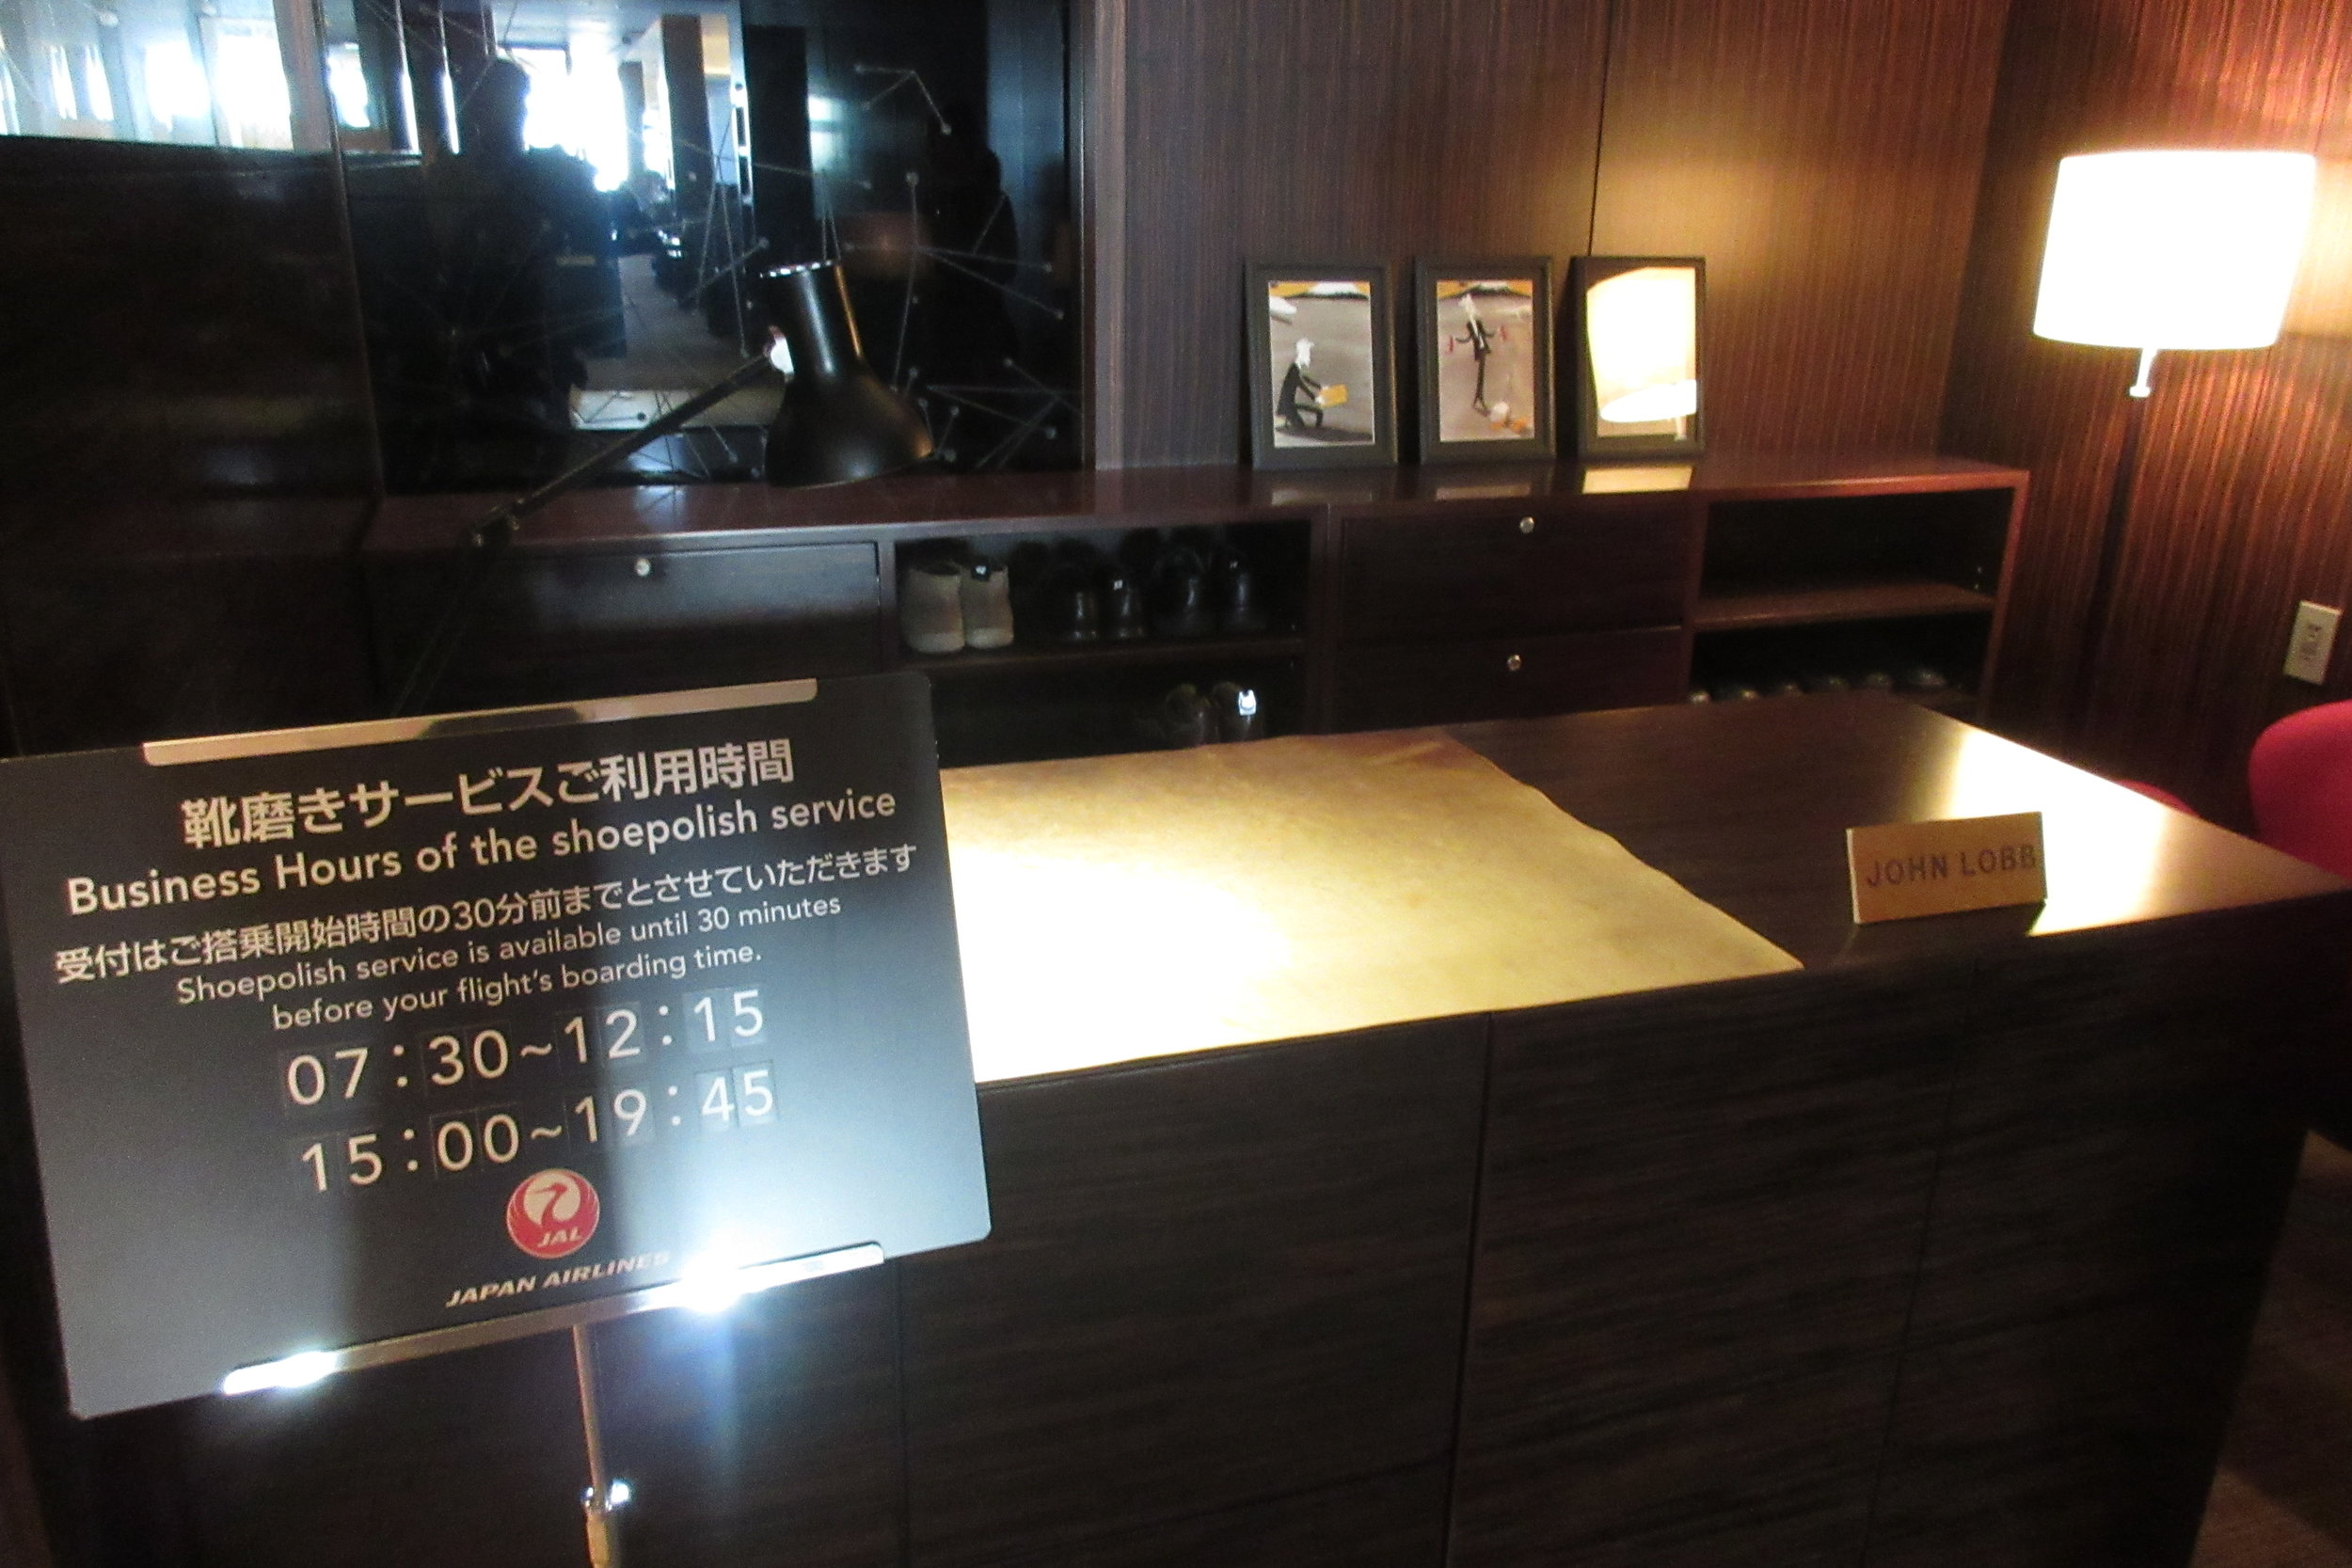 Japan Airlines First Class Lounge Tokyo Narita – Shoe polish service